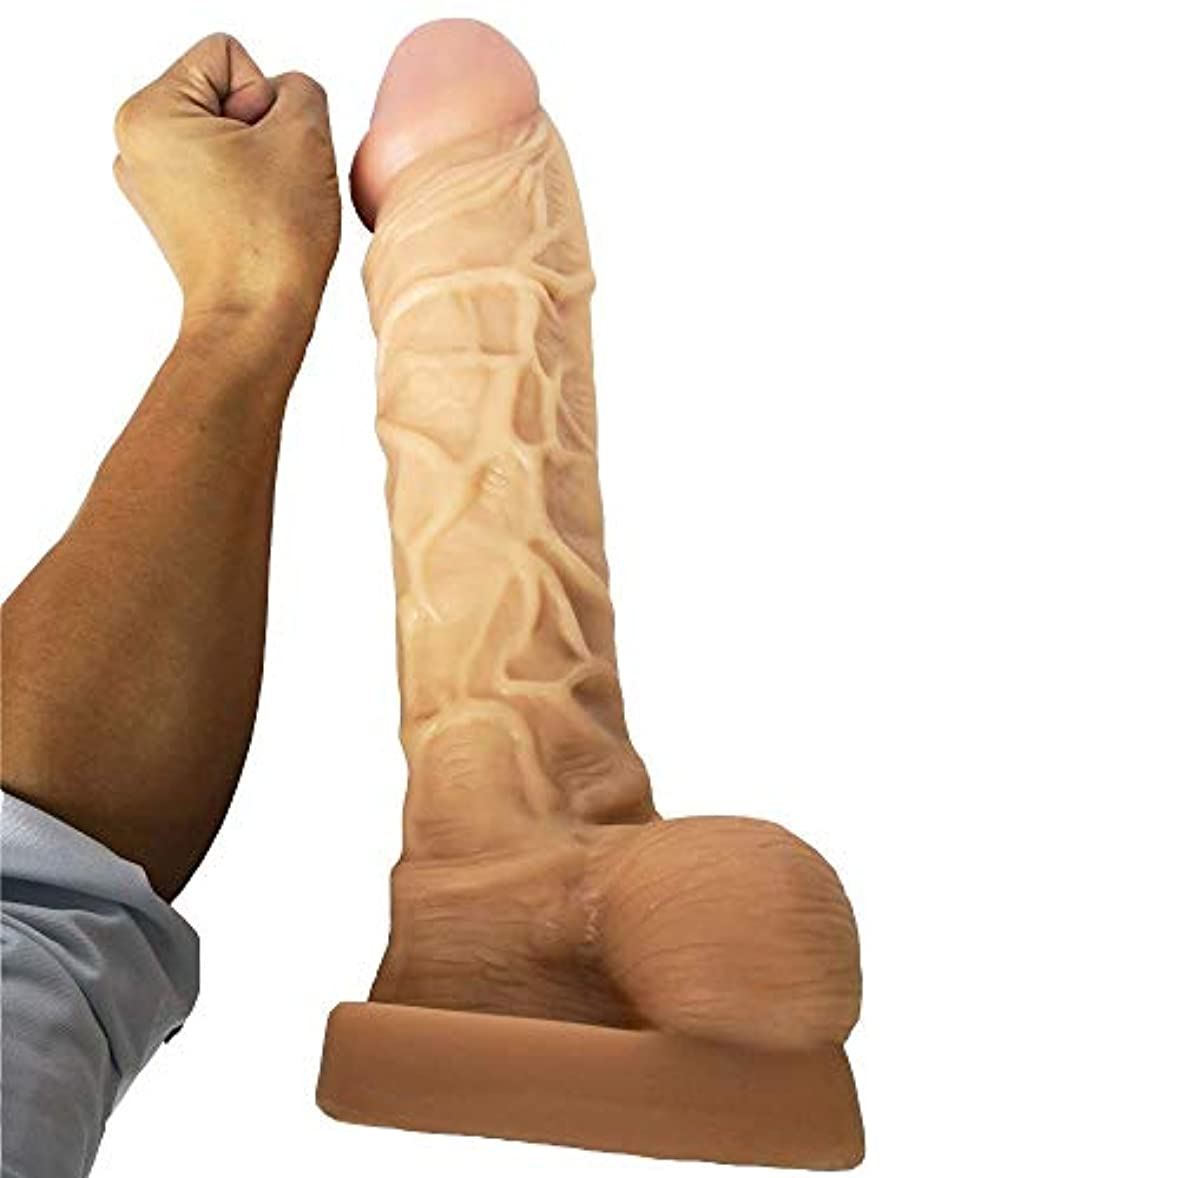 権限を与える反映する引っ張る大人の楽しみ/Realistic-DǐcksFemale Relax Extra Huge BigD-ǐl-dosInsert 15 Inch Lifelike Massager for Women、Oversized...